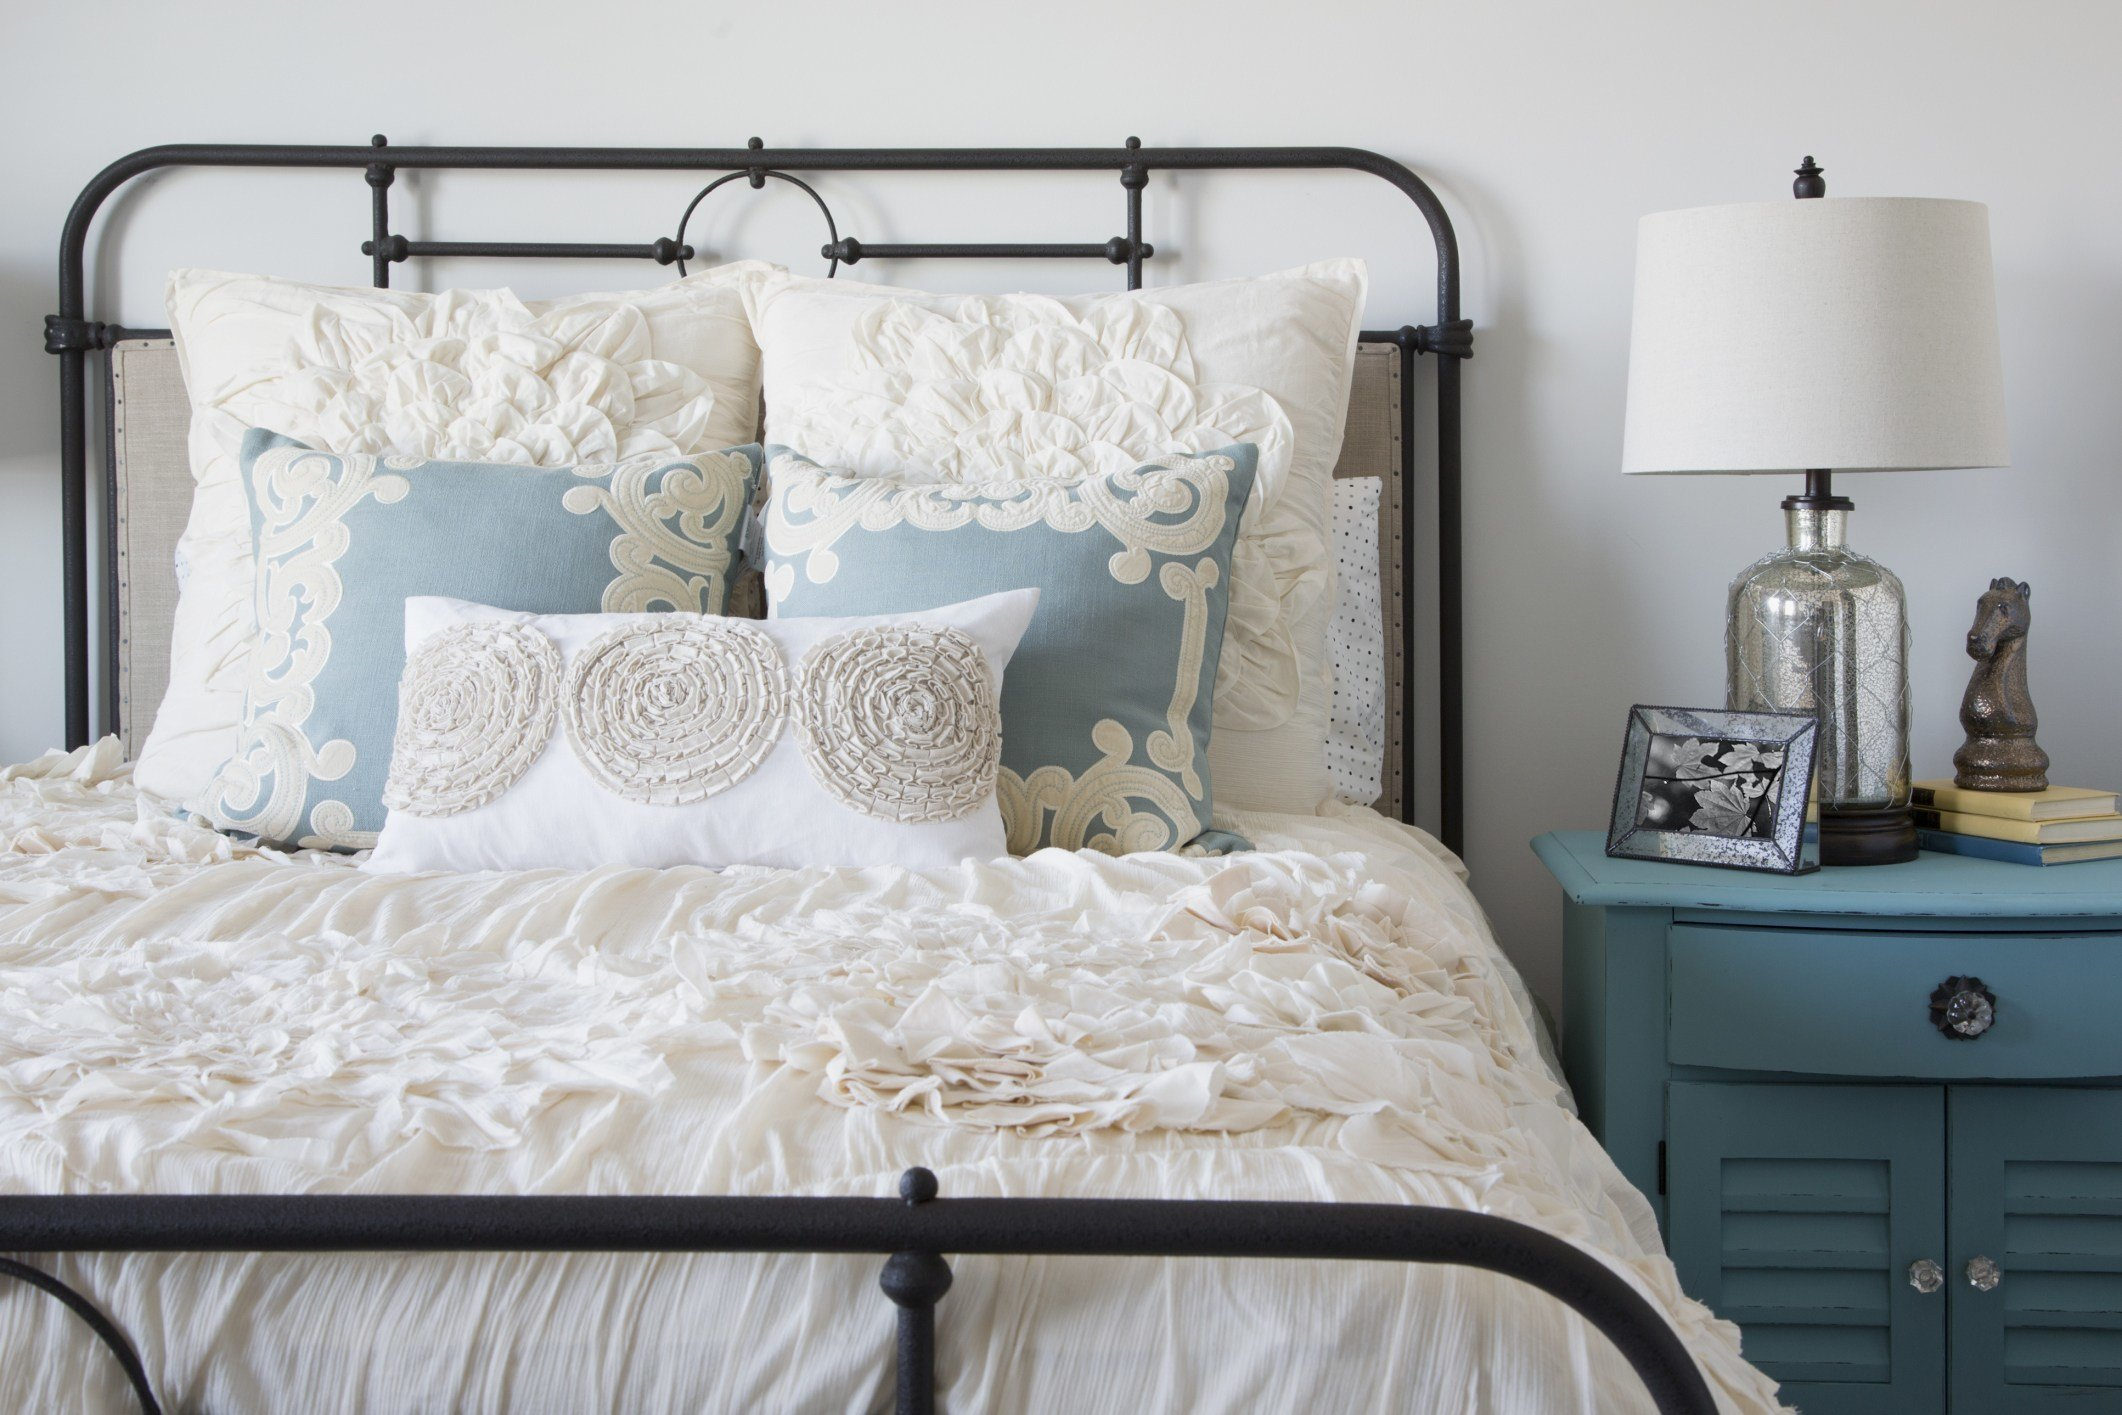 Best Guest Bedroom Decorating Ideas Tips For Decorating A With Pictures